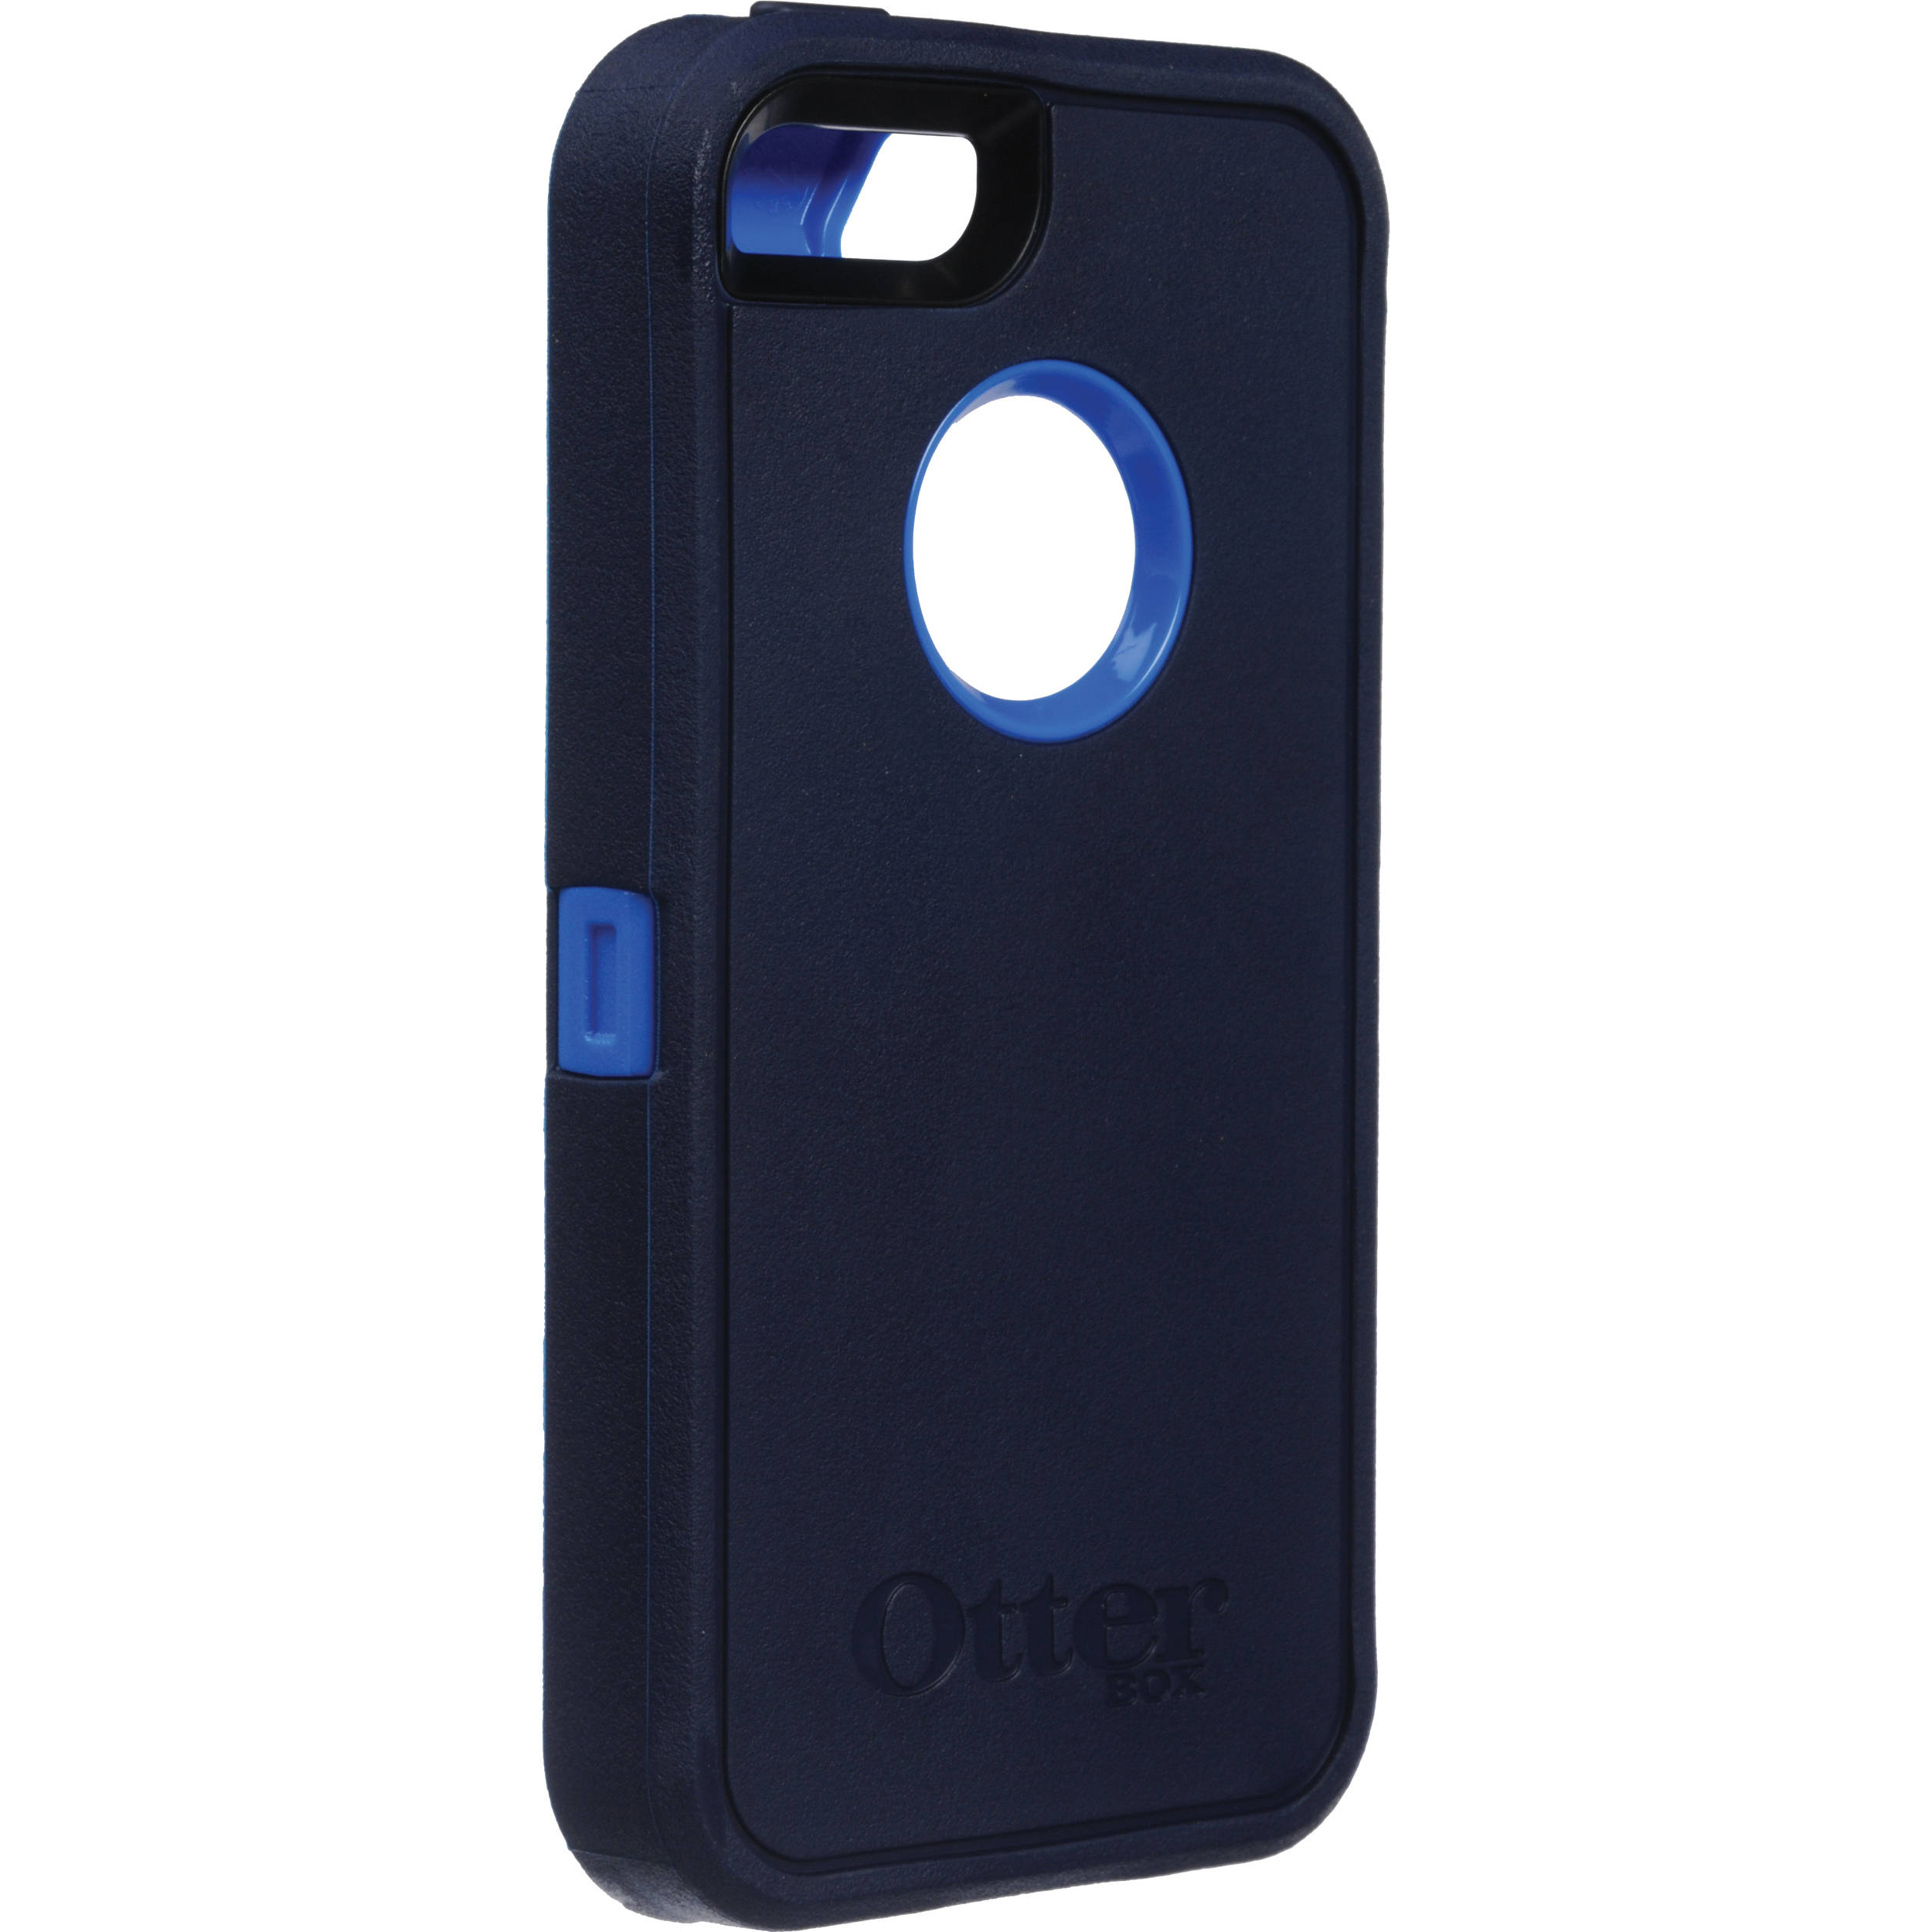 OtterBox Defender Series Case for iPhone 5 5s SE (Surf) 77-33380 25d5a58f2b26